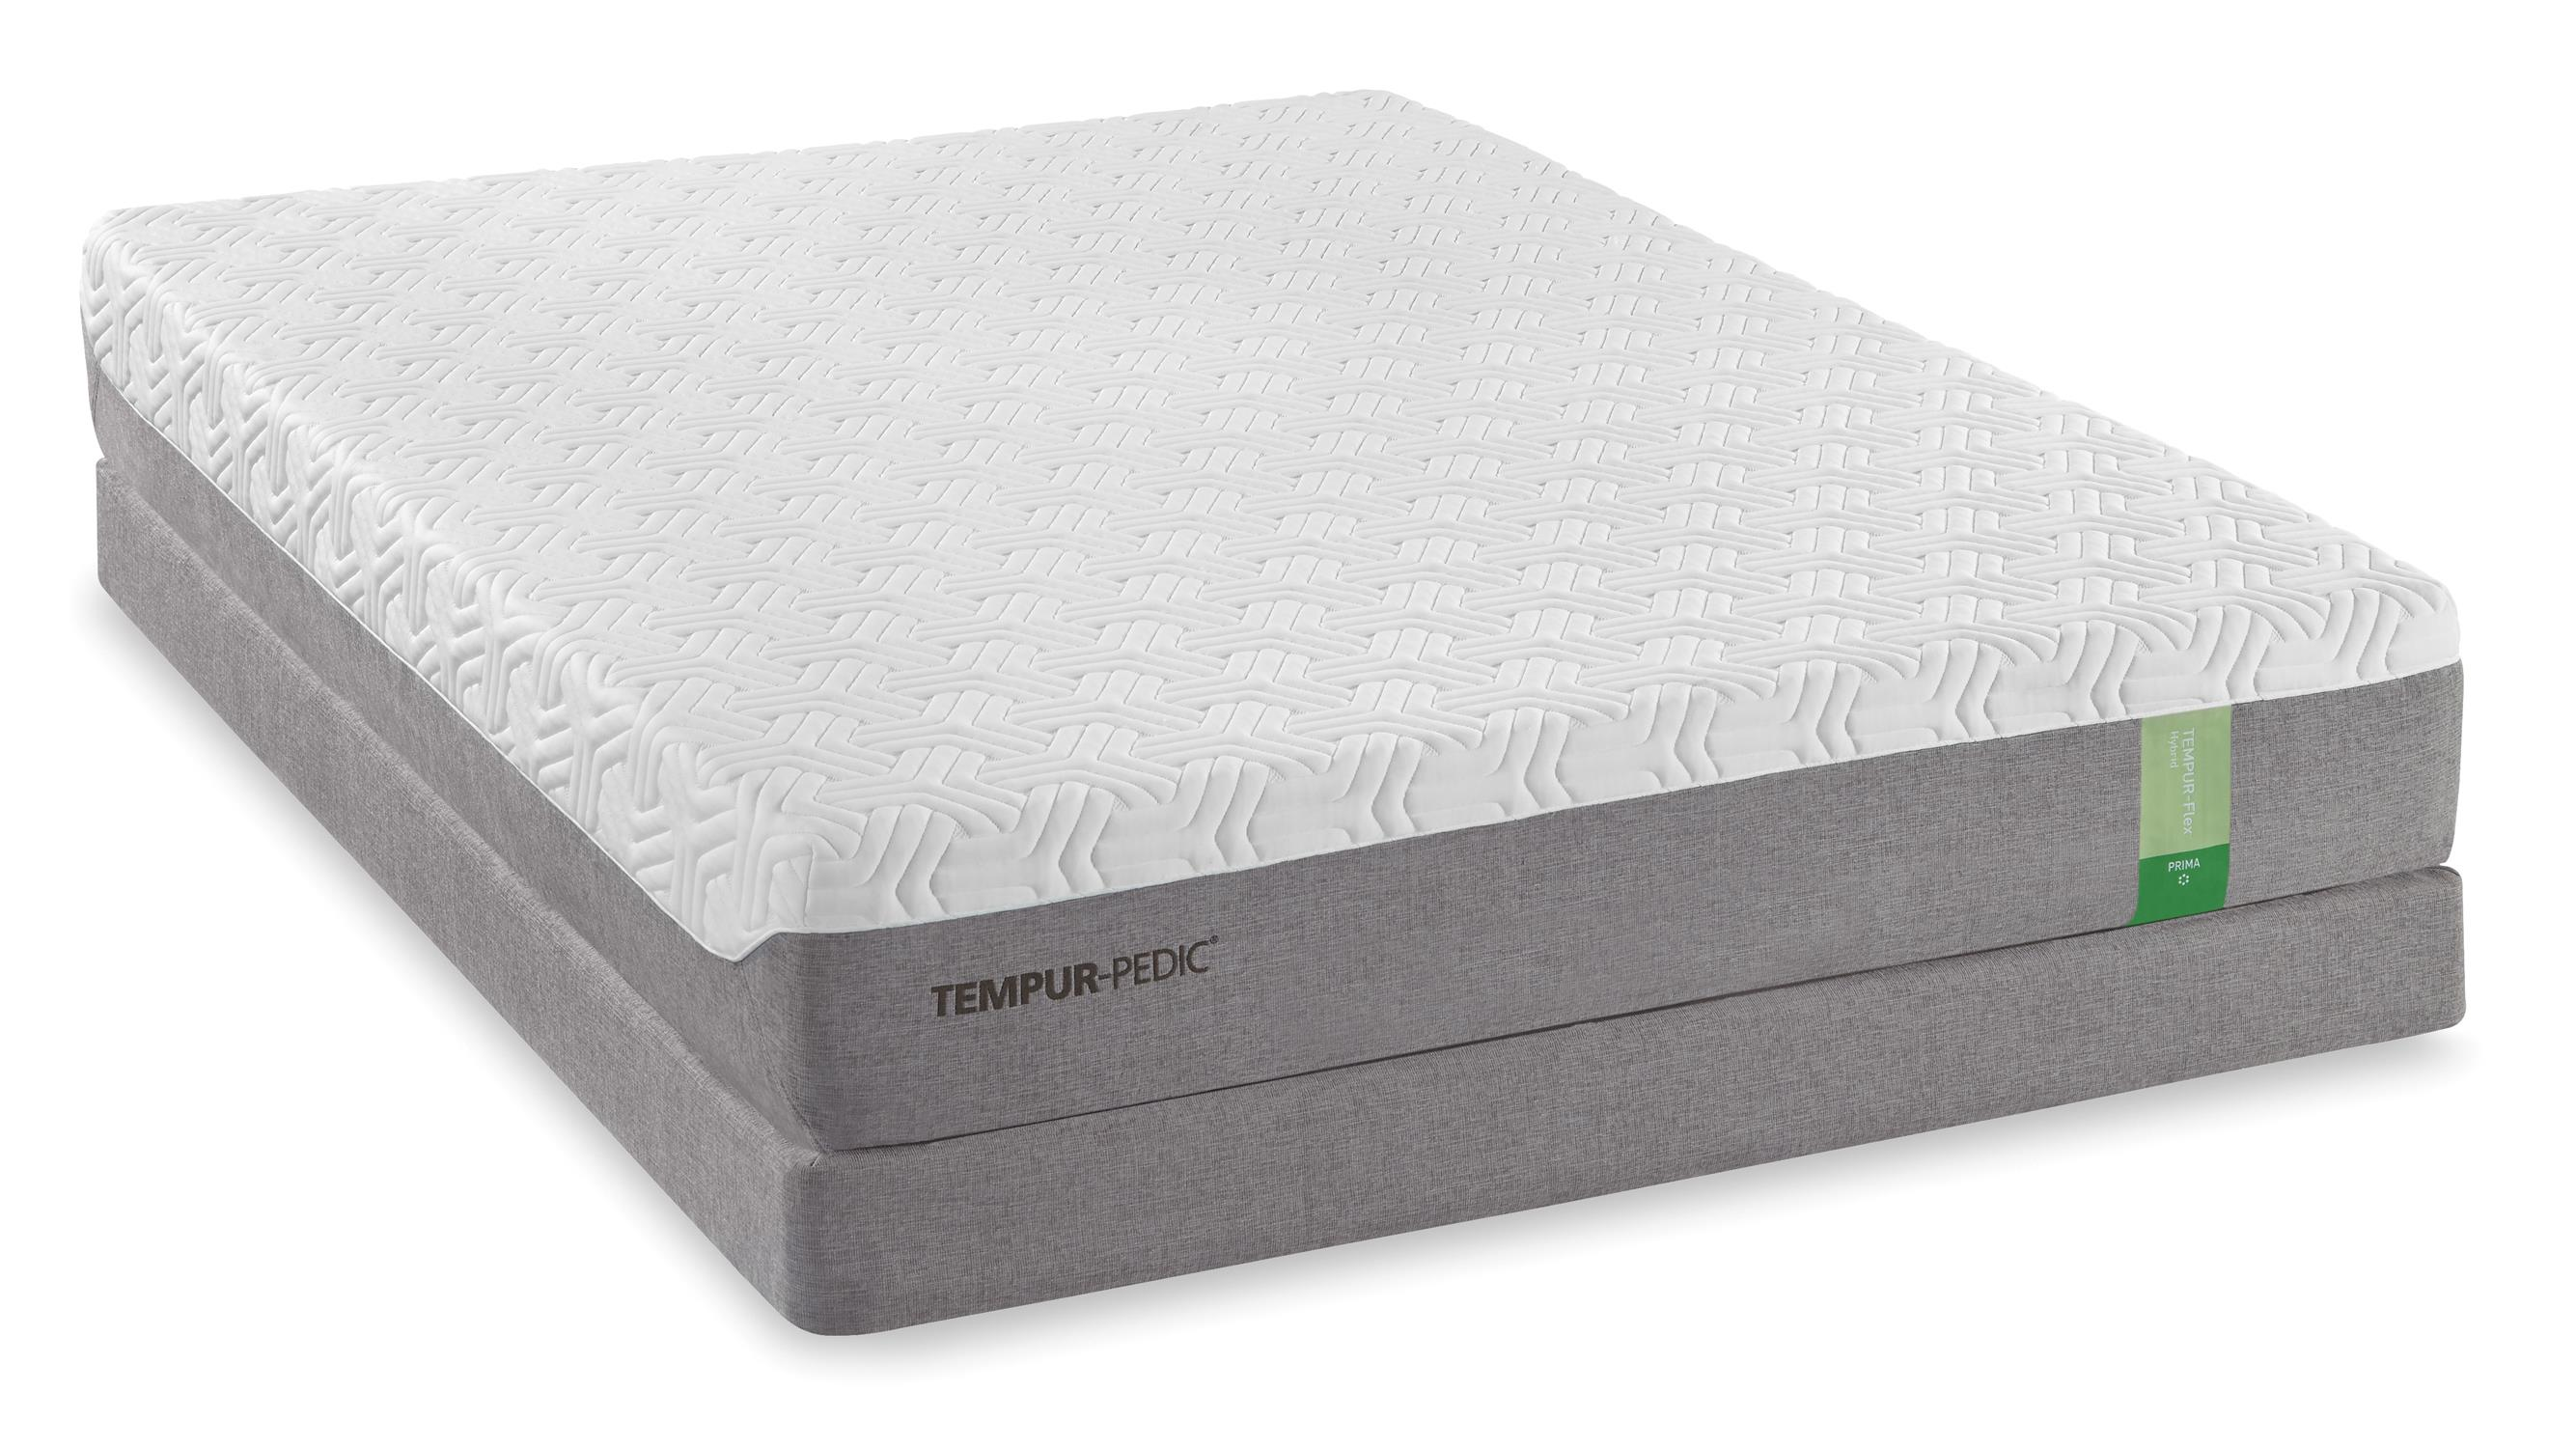 Tempur-Pedic® TEMPUR-Flex Prima Twin XL Medium Firm Low Profile Set - Item Number: 10115220+21510120